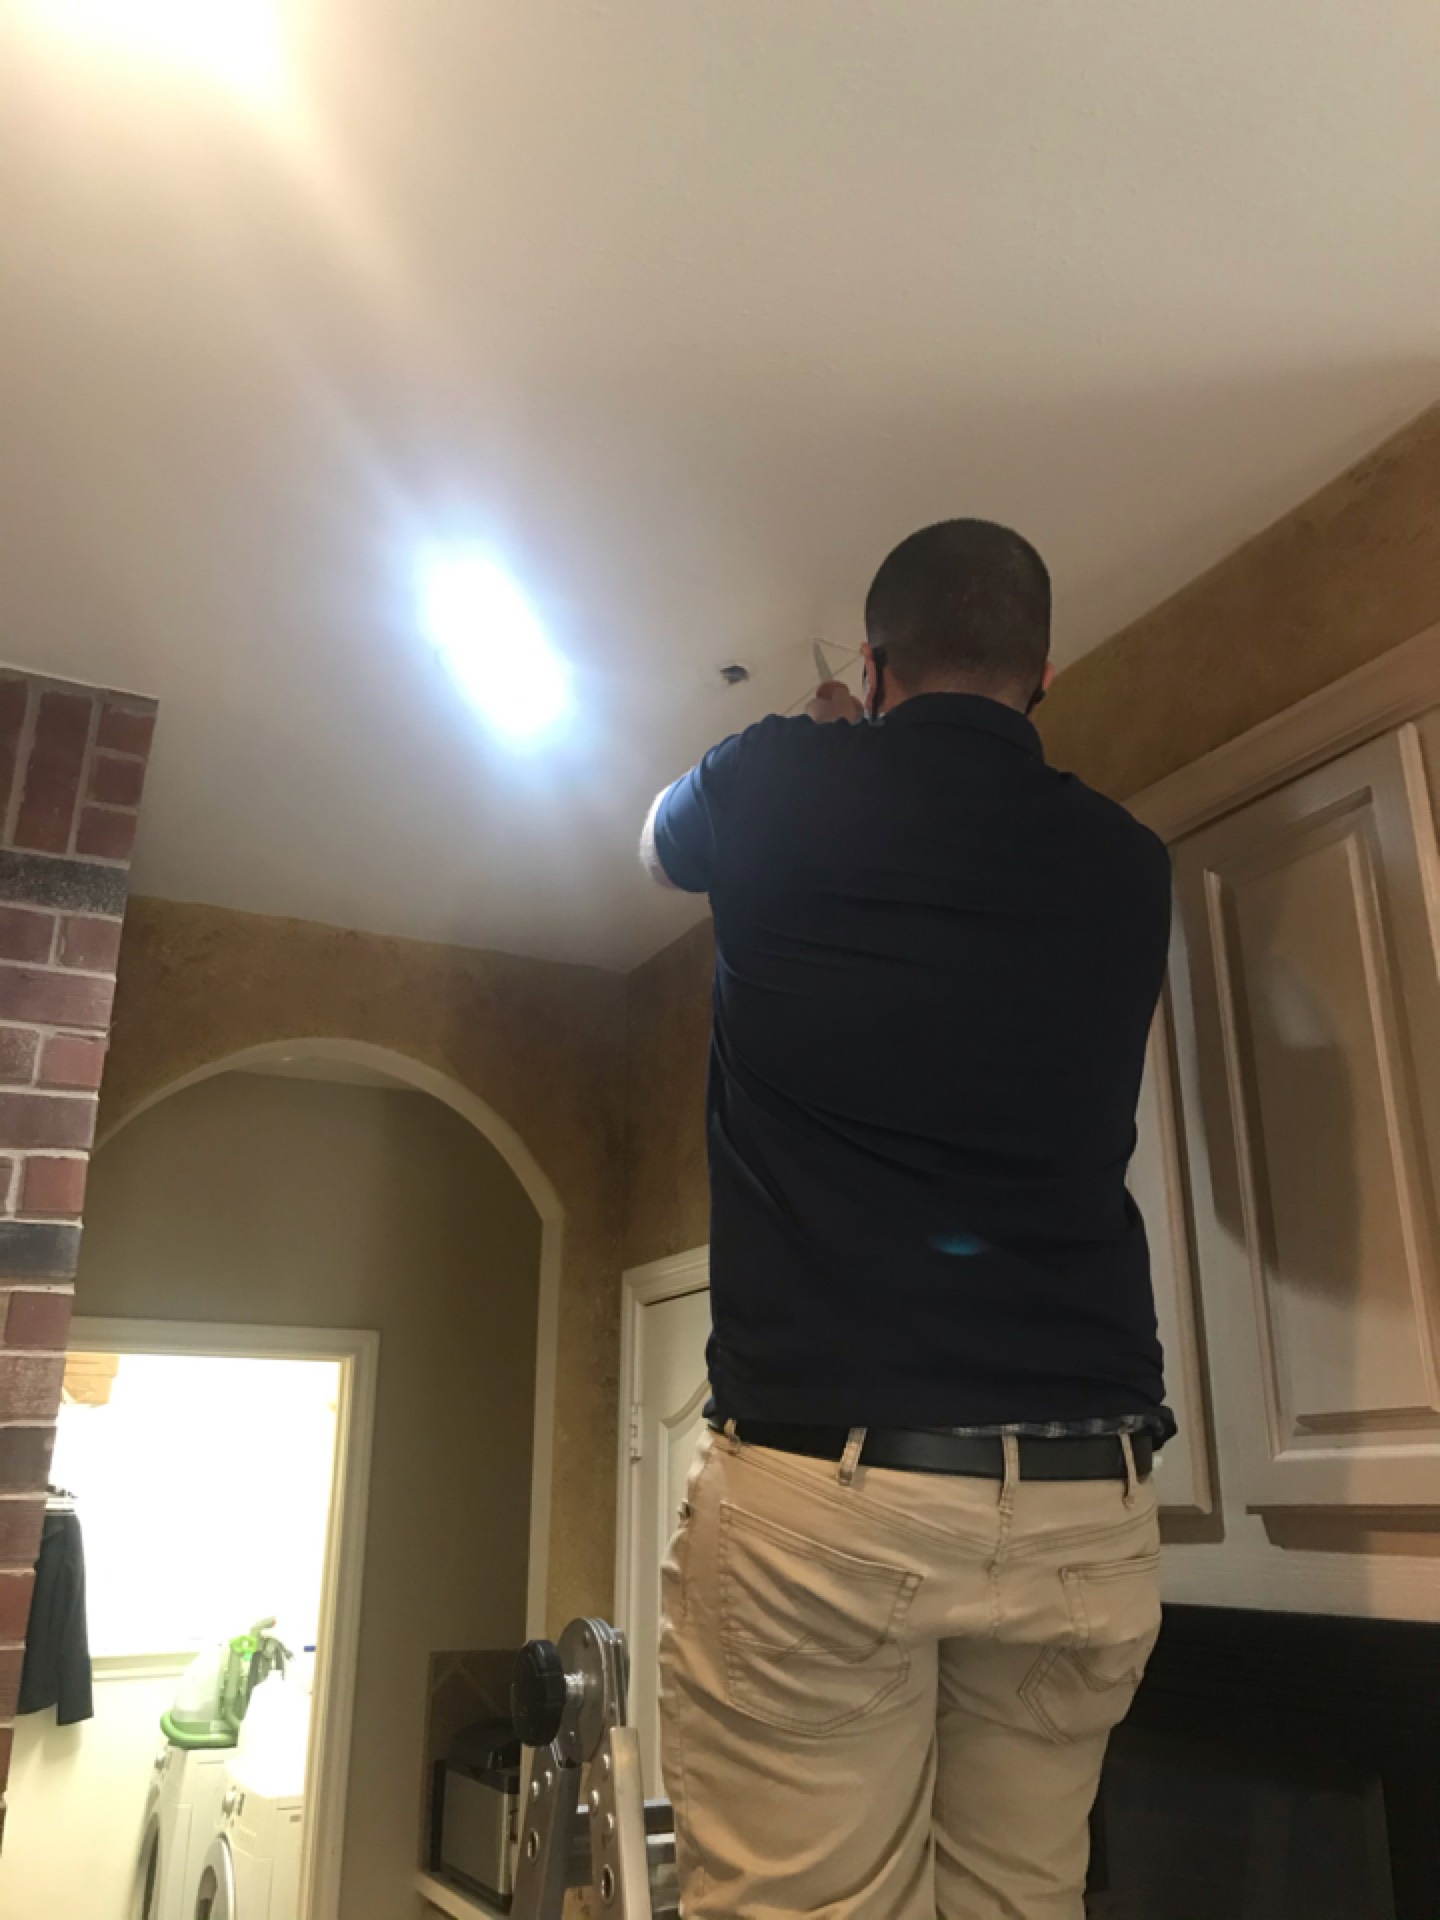 League City, TX - Leak in cpvc in ceiling possibly do to freeze. League city